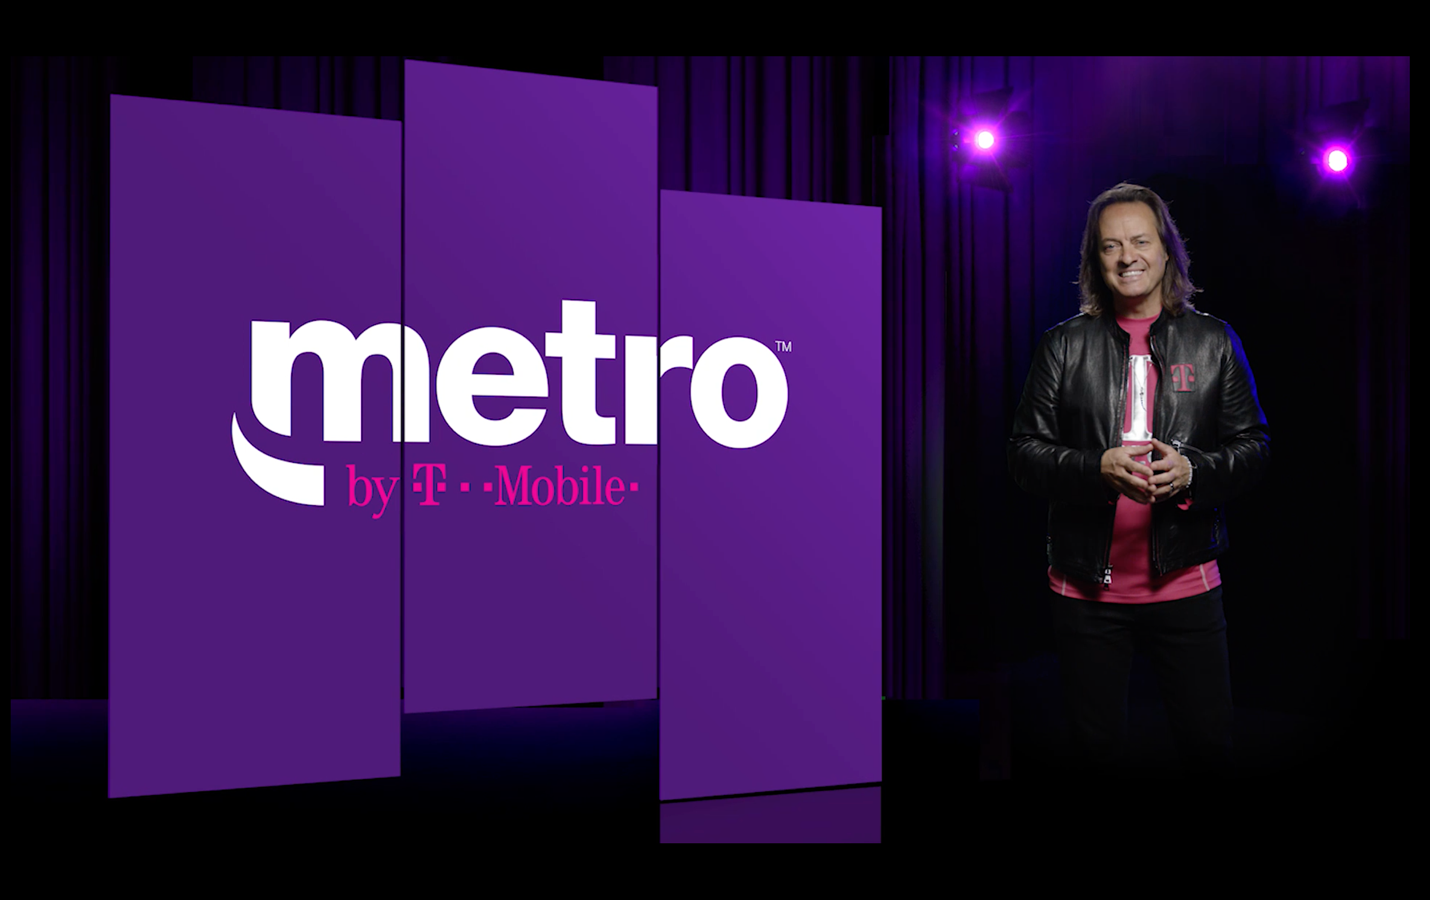 MetroPCS chnage sits name to metro by T-Mobile